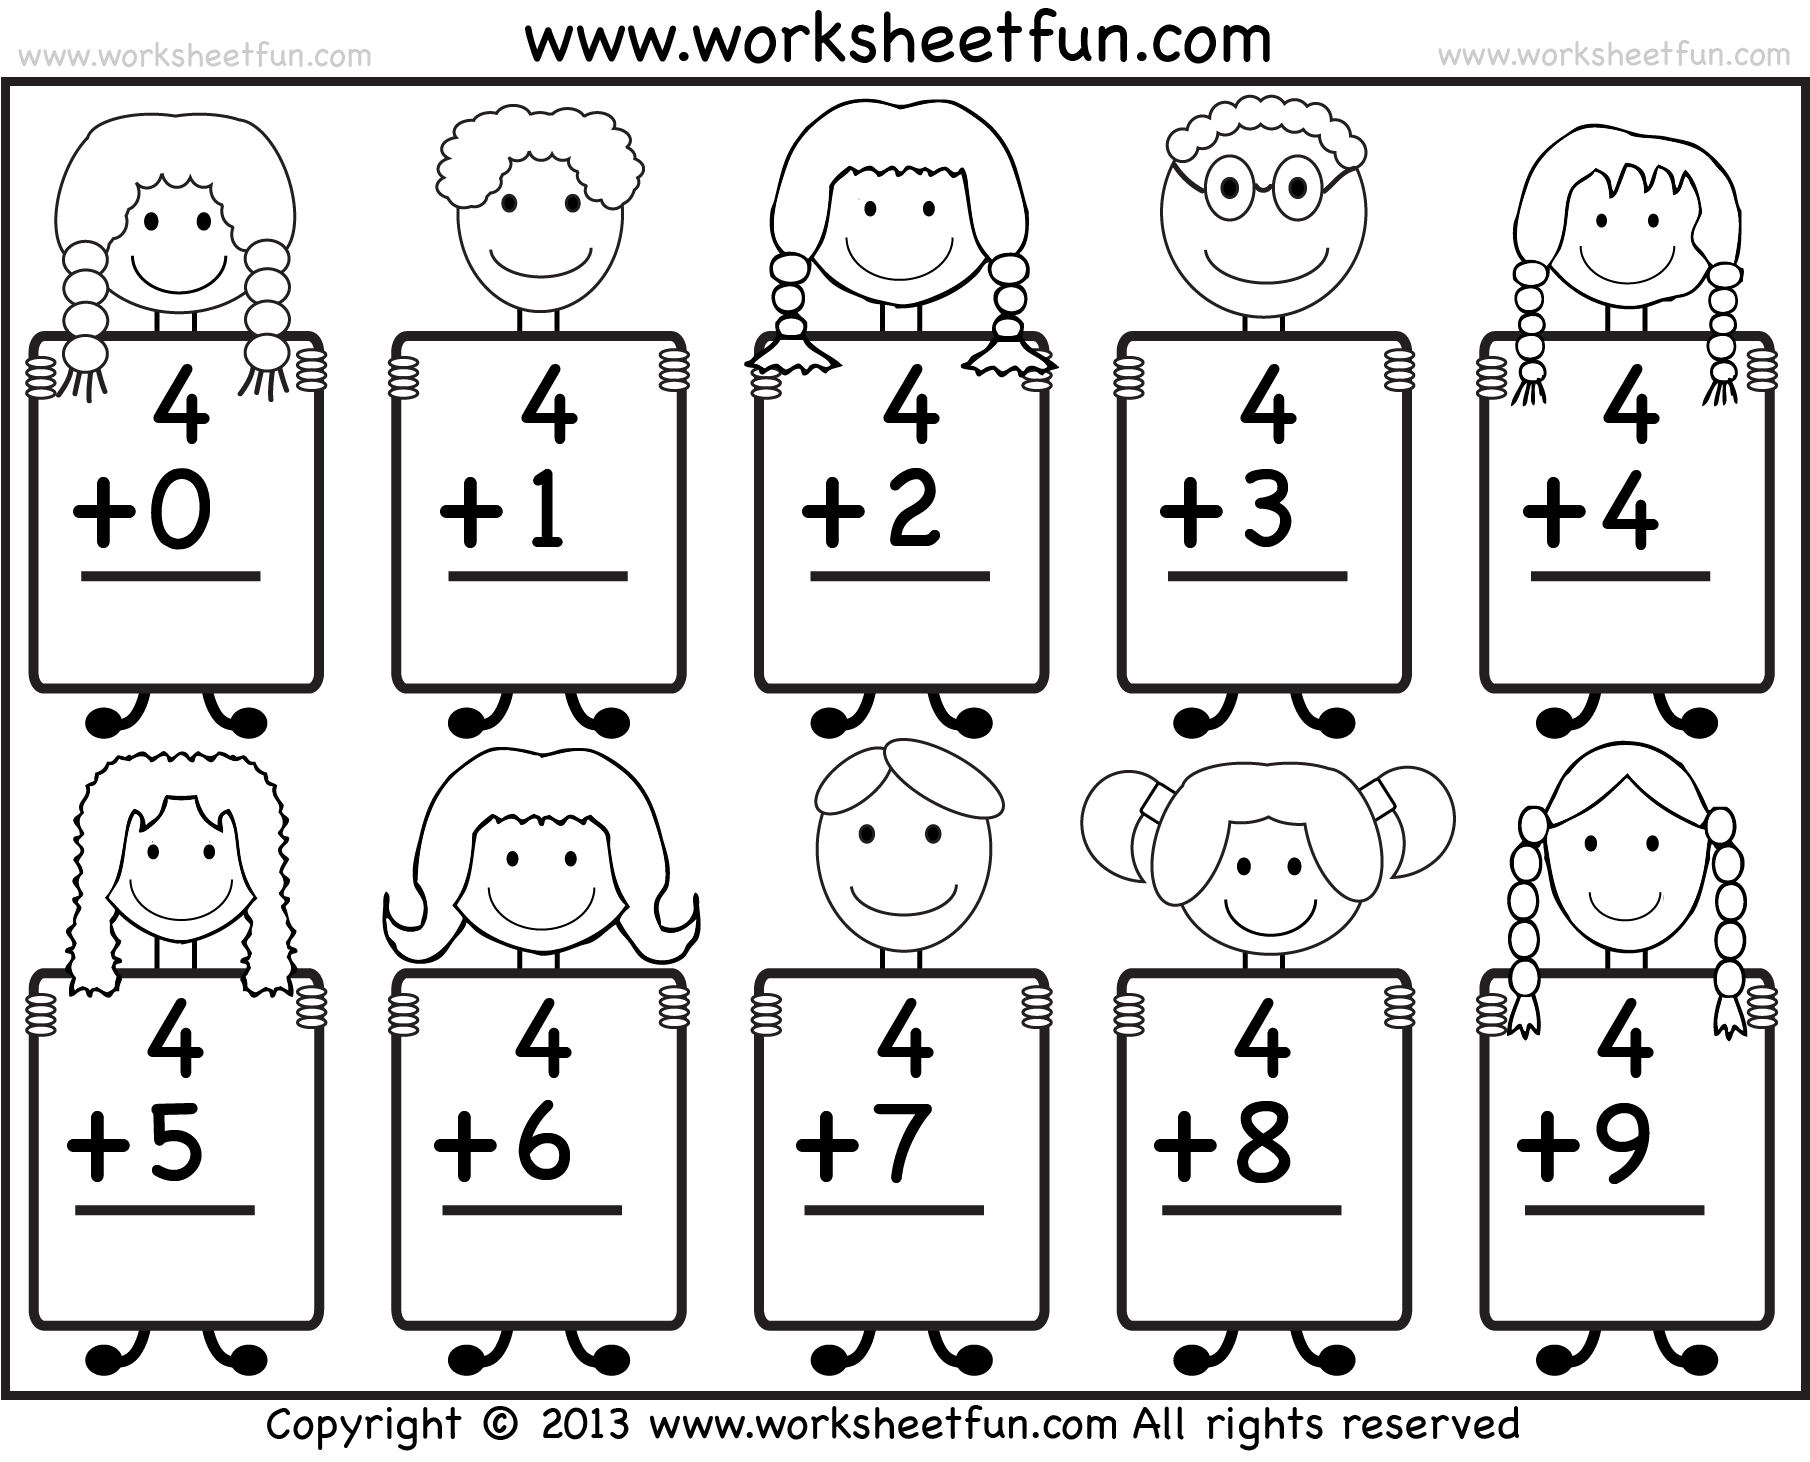 Kindergarten free colouring worksheets - Basic Addition Facts Nine Worksheets Free Printable Worksheets